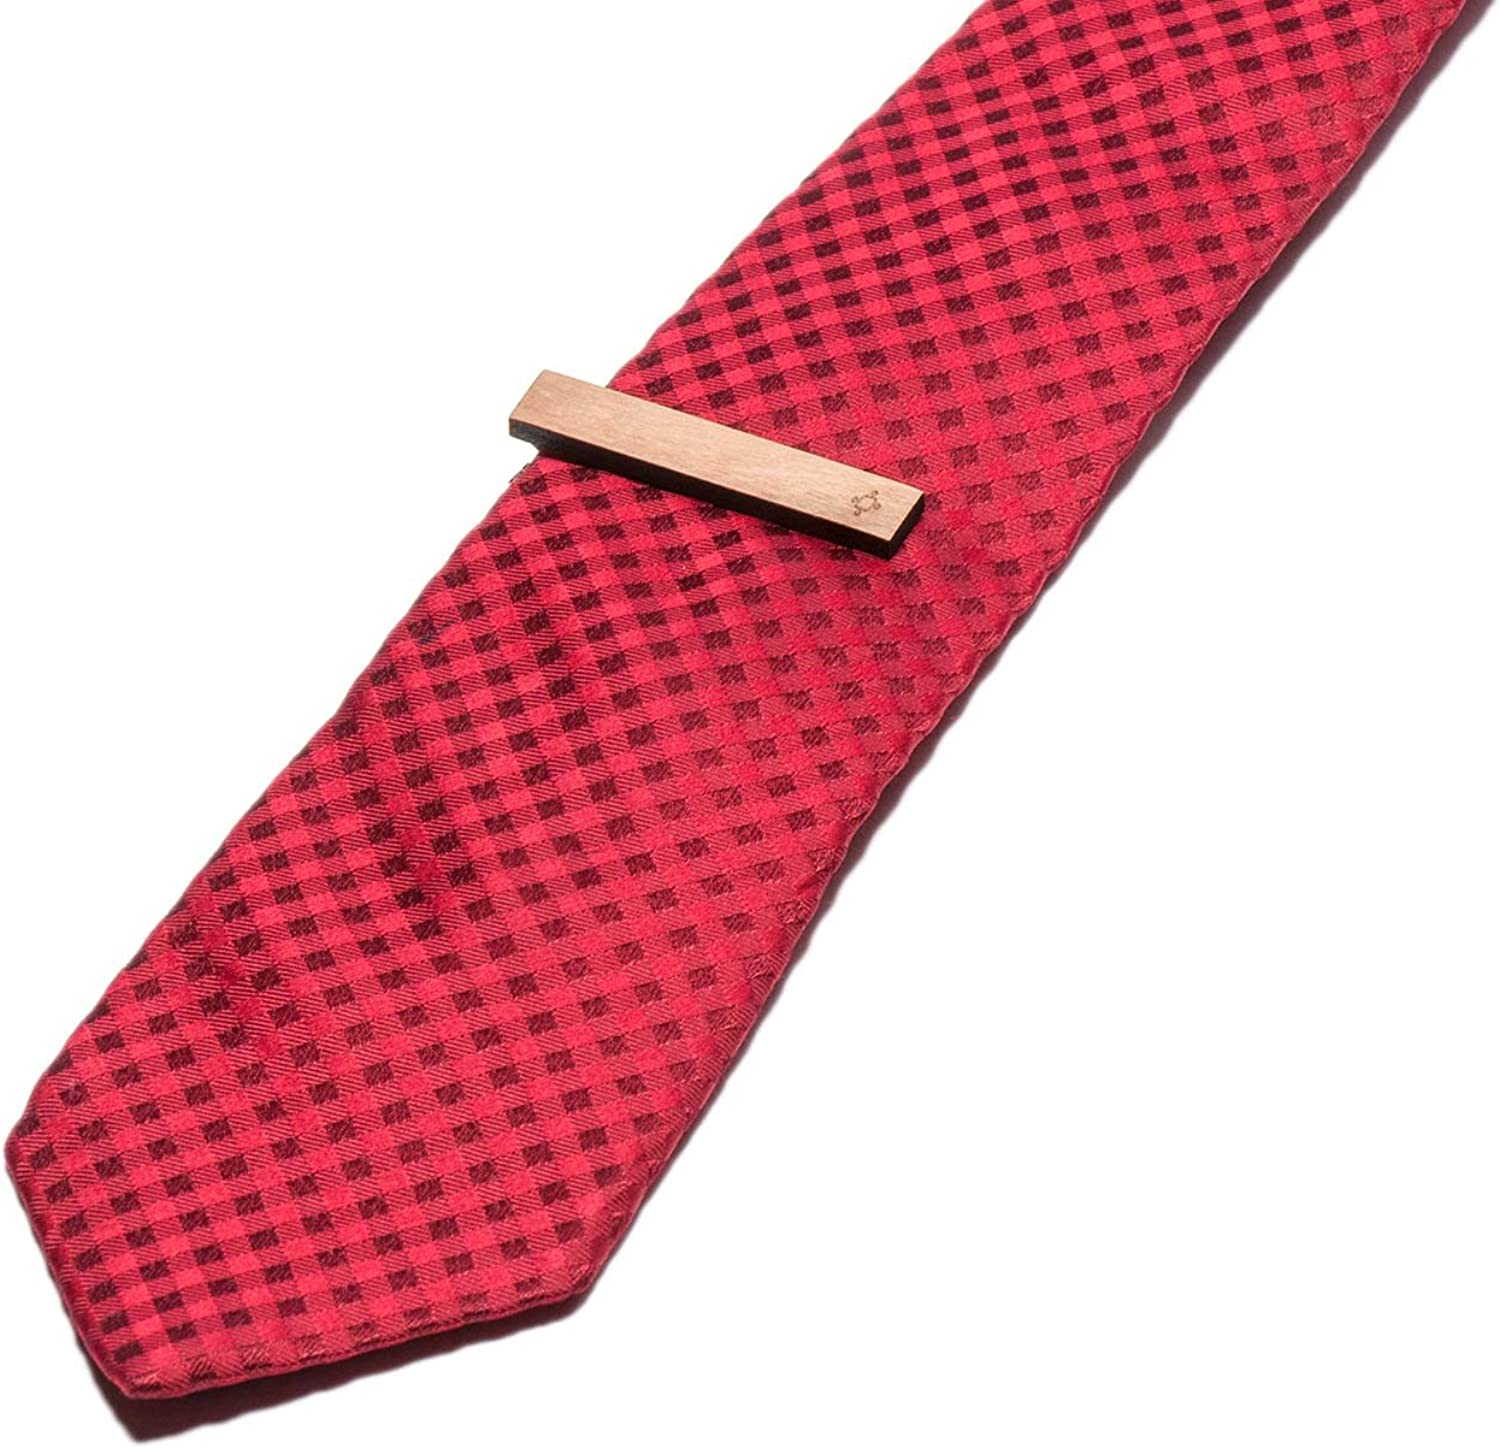 Wooden Accessories Company Wooden Tie Clips with Laser Engraved Meeting Table Design Cherry Wood Tie Bar Engraved in The USA